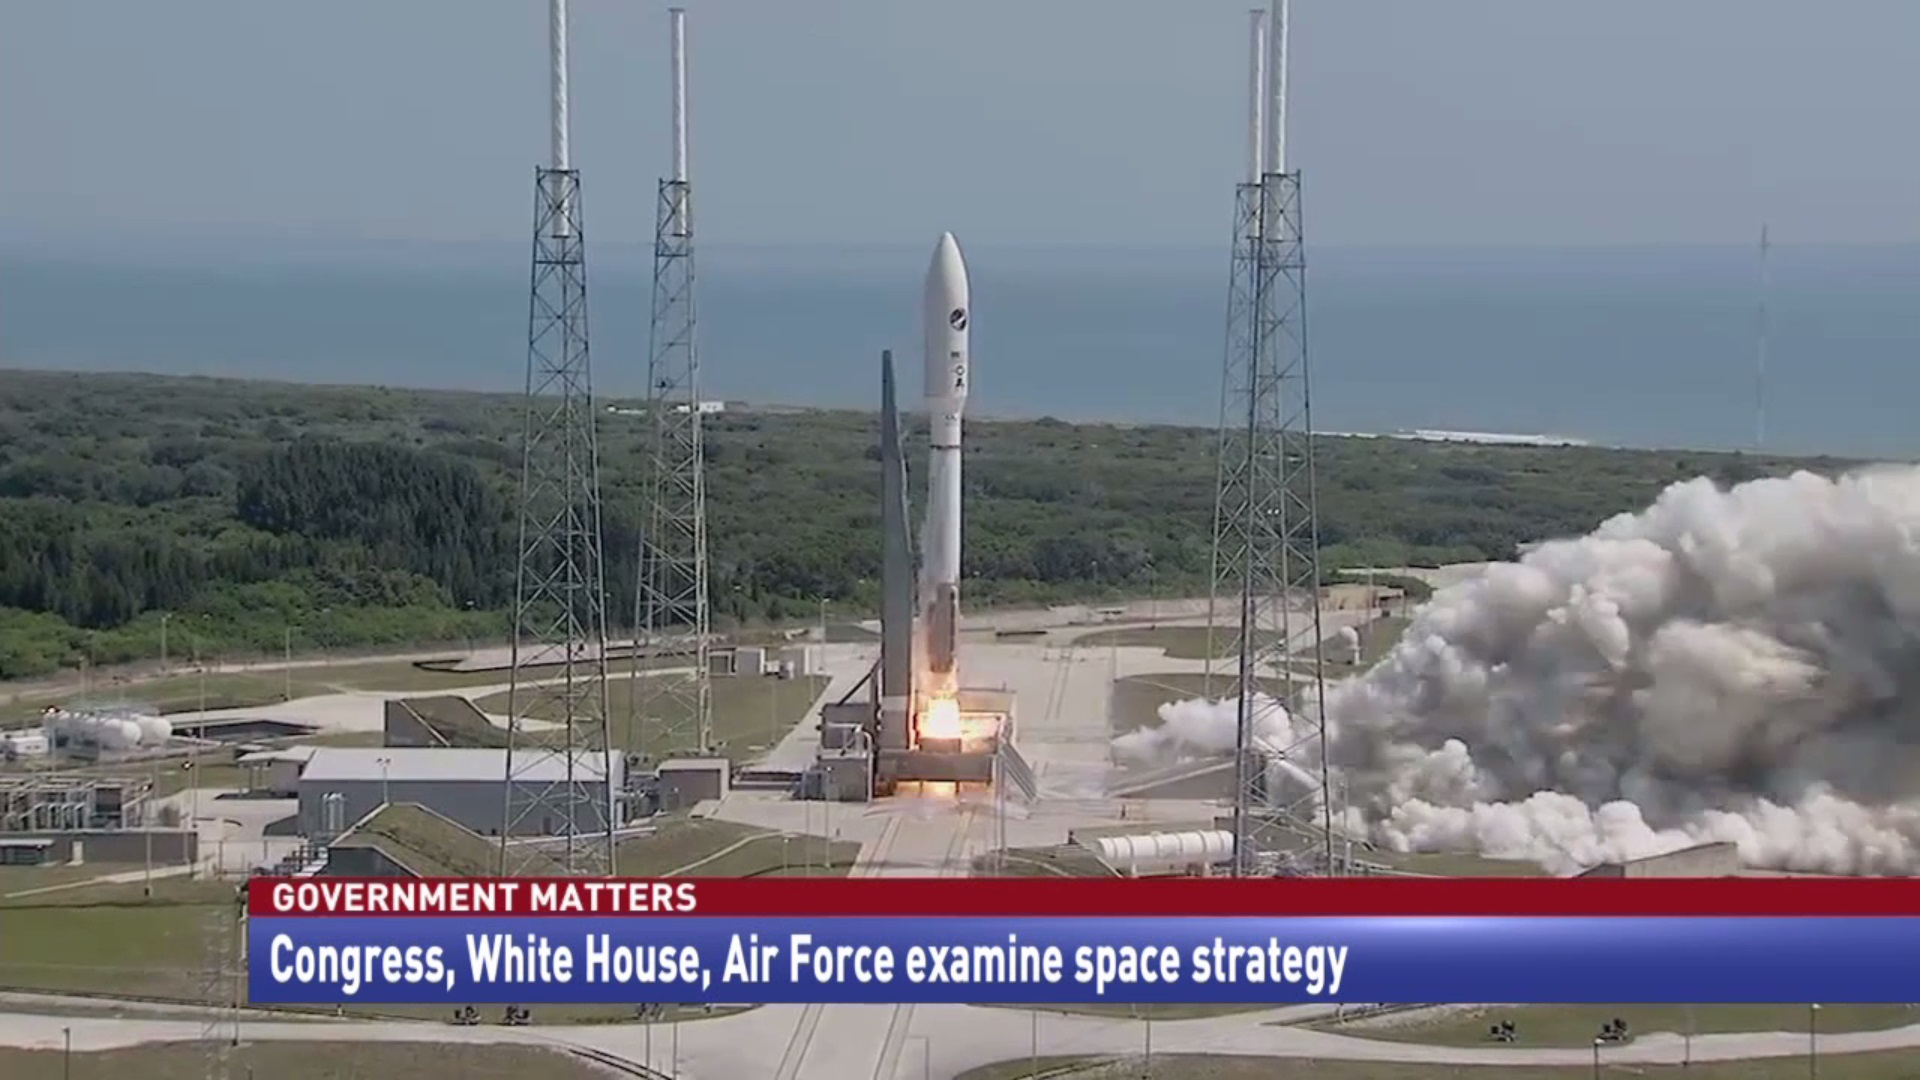 Congress, White House, Air Force examine space strategy